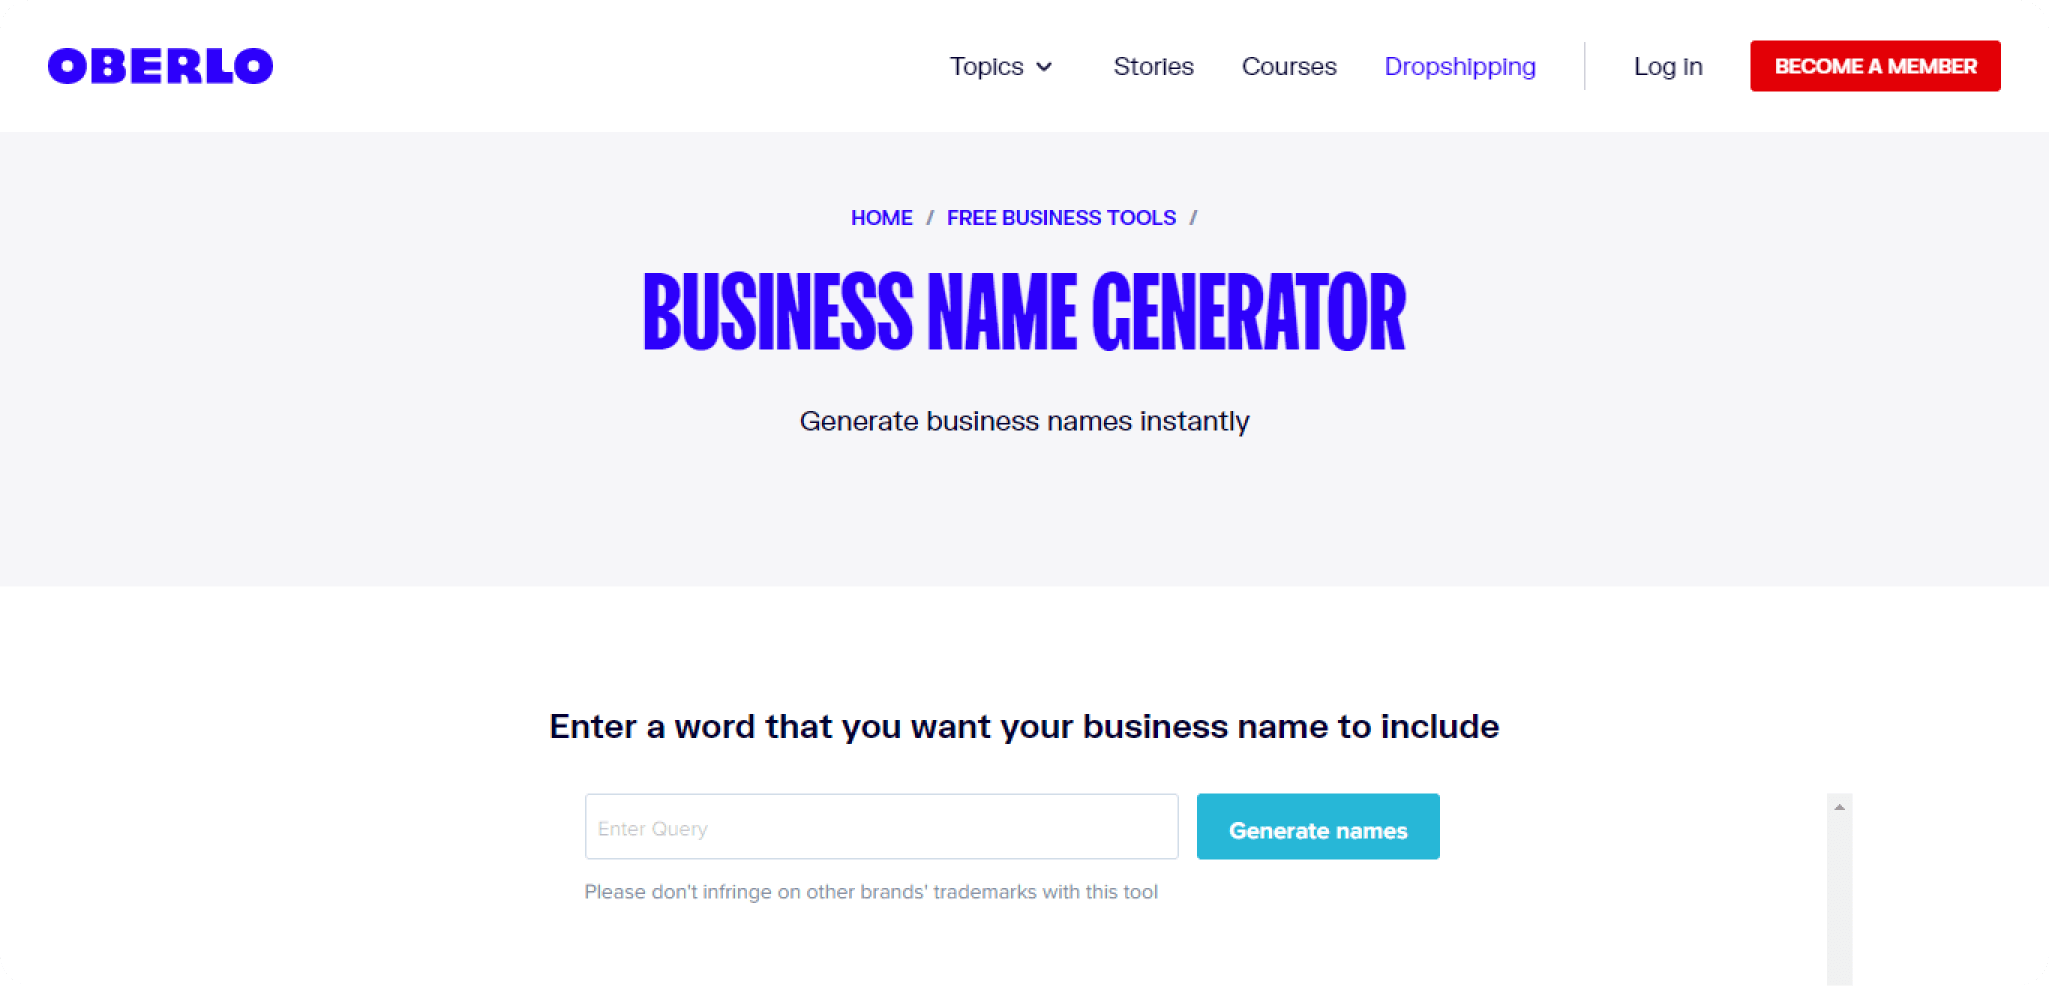 Oberlo-Generator-also-provide-business-name-for-small-business-to-choose-openly